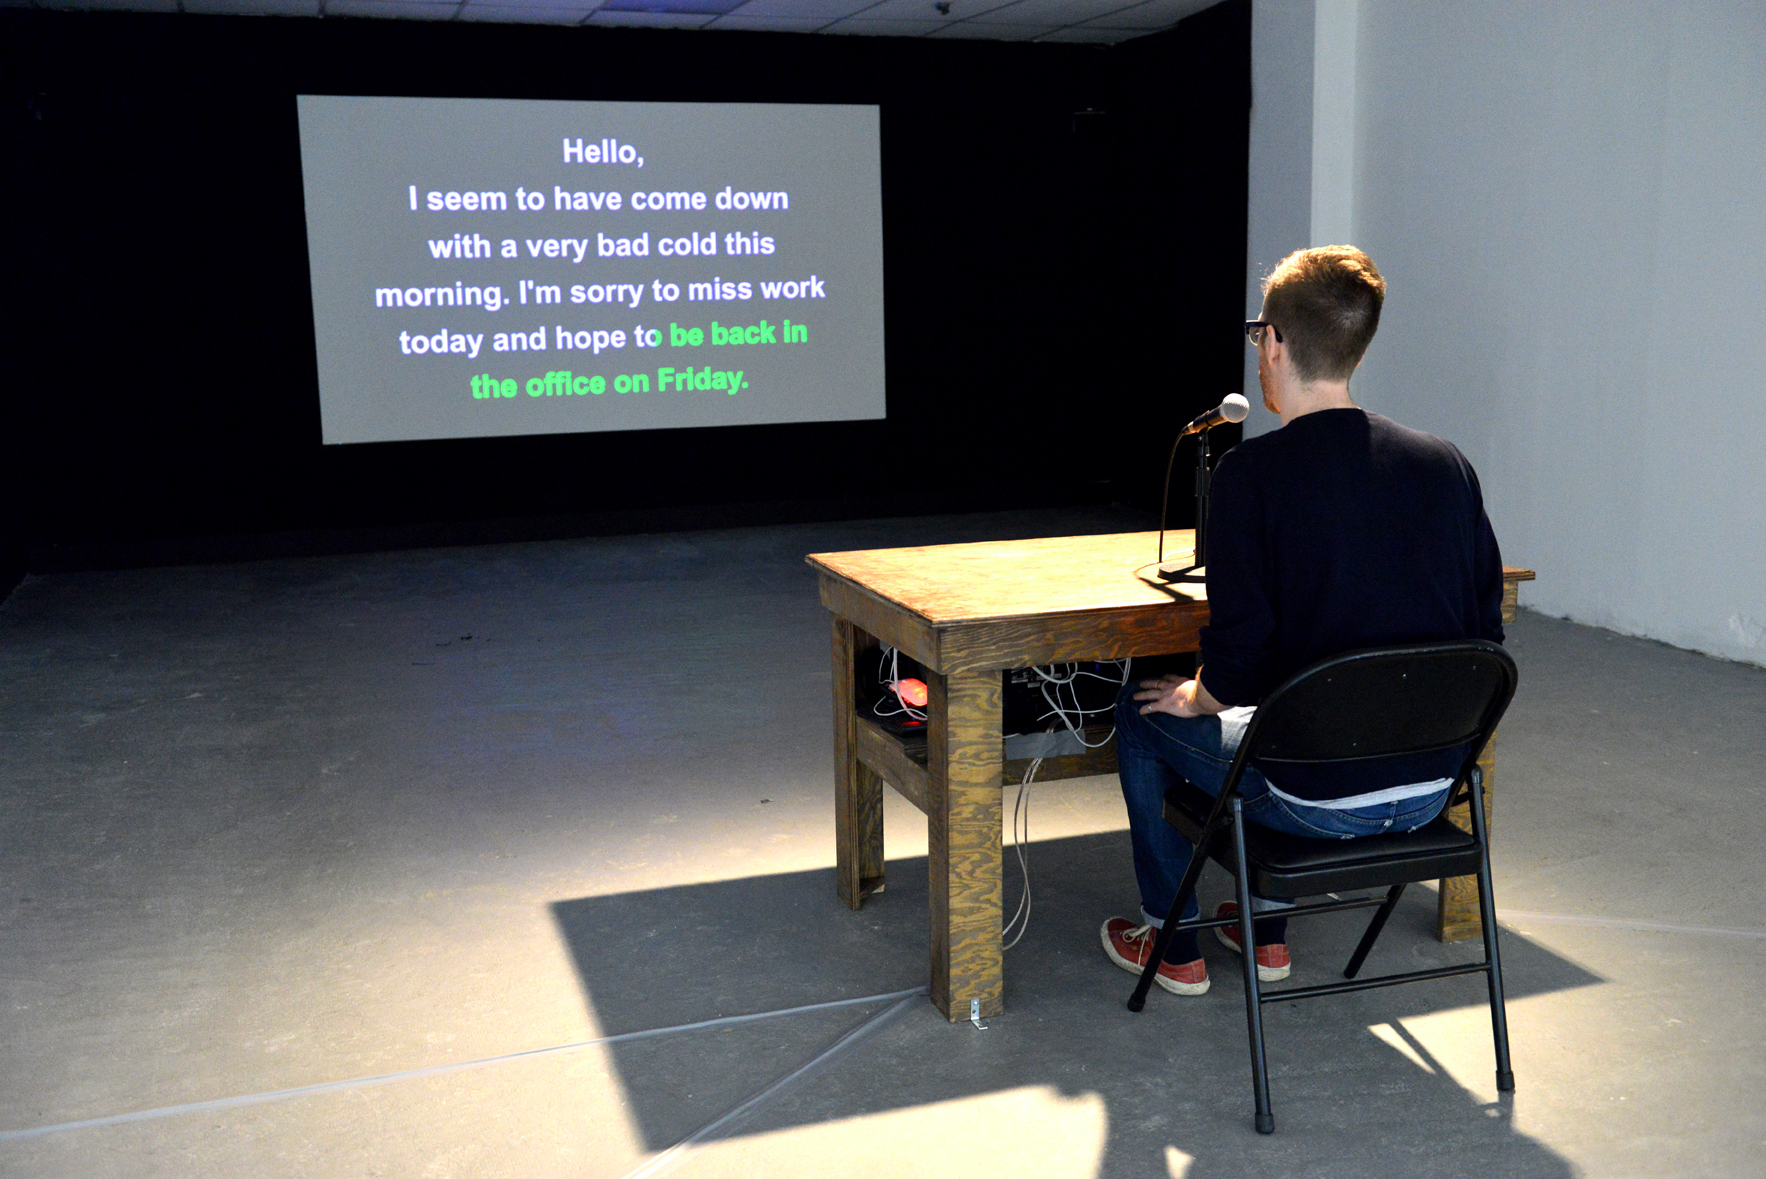 In this installation Bambitchell invites viewers to playfully participate by taking the language test themselves - in the performative style of karaoke. In doing so they are required to follow a set of rigid rules and cues that tell them when to speak and when they must remain silent. The results of the tests are recorded, stored and played back throughout the course of the exhibition.